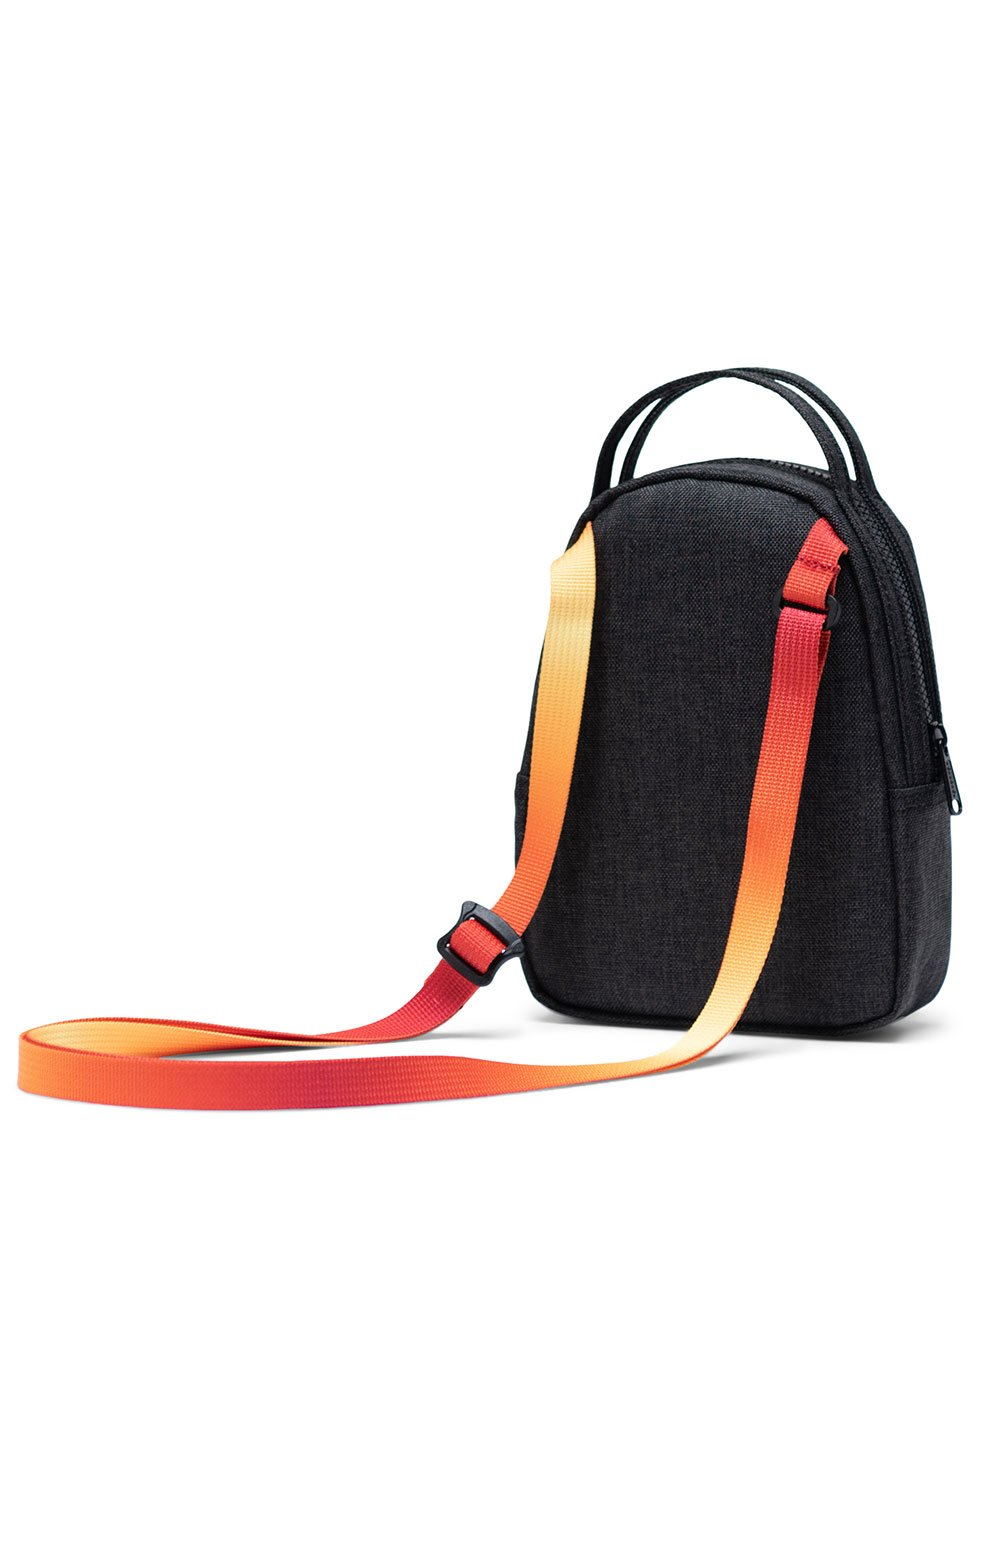 Nova Crossbody Bag - Black Crosshatch Sunset 3